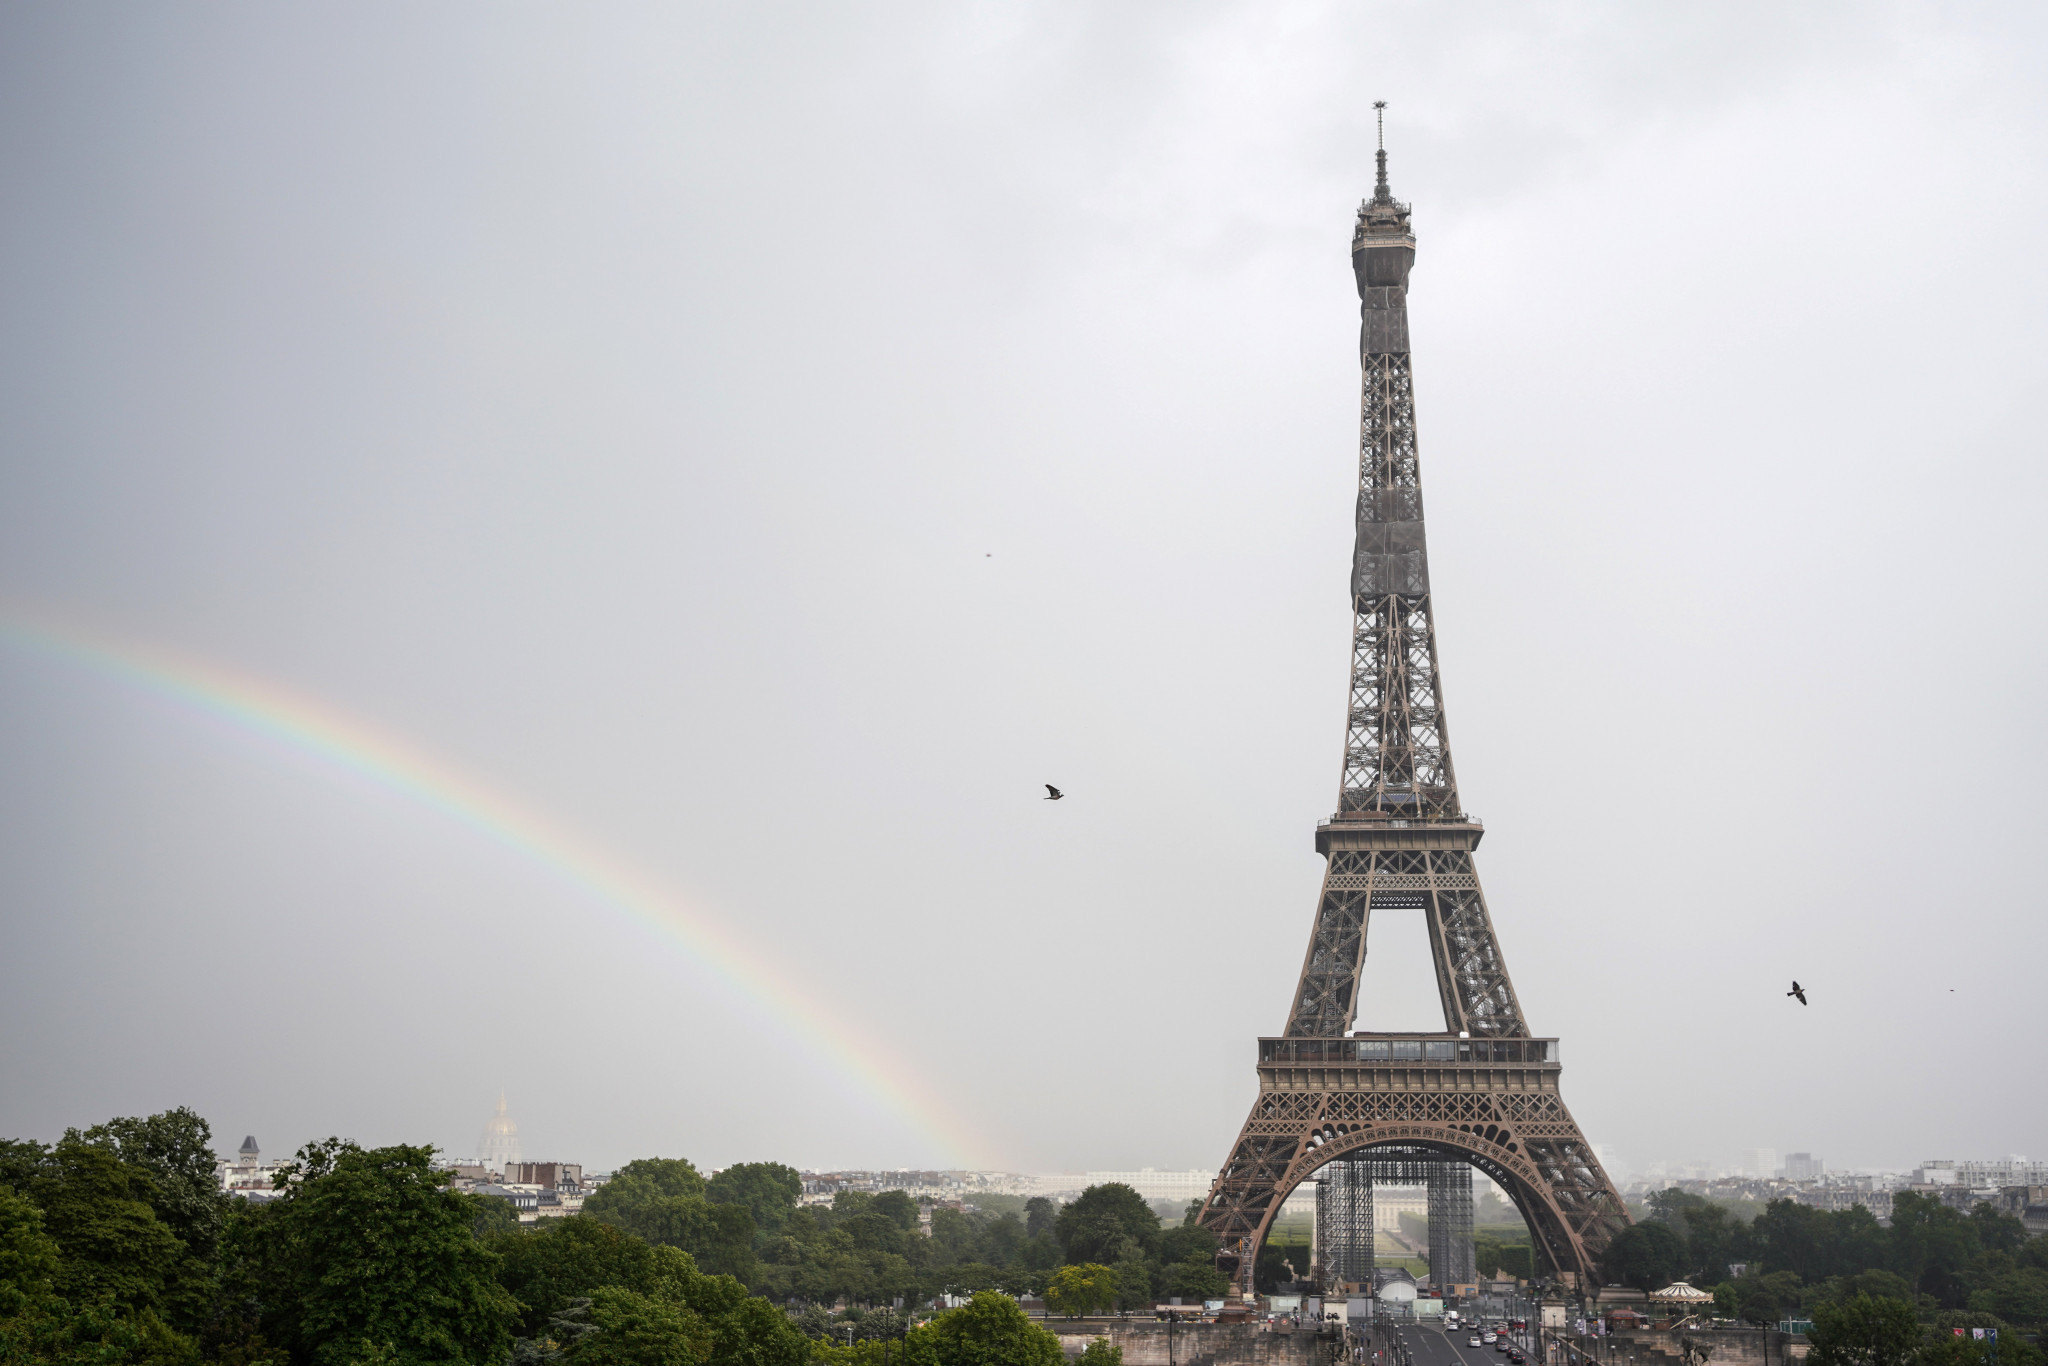 Eiffel Tower announced as main venue for Global Sports Week Paris